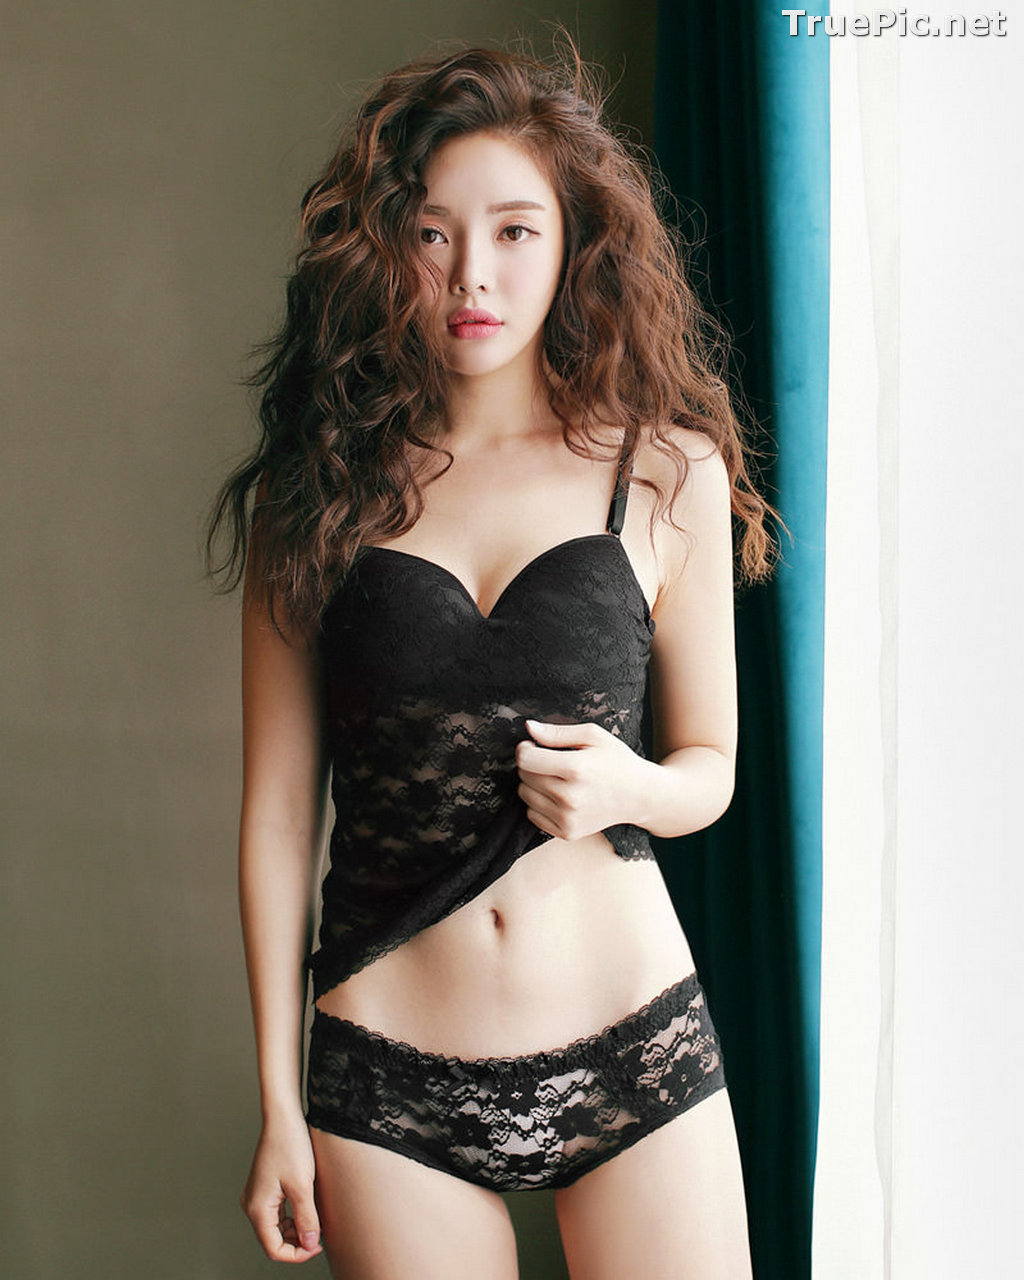 Image Korean Fashion Model – Jin Hee – Sexy Lingerie Collection #1 - TruePic.net - Picture-4